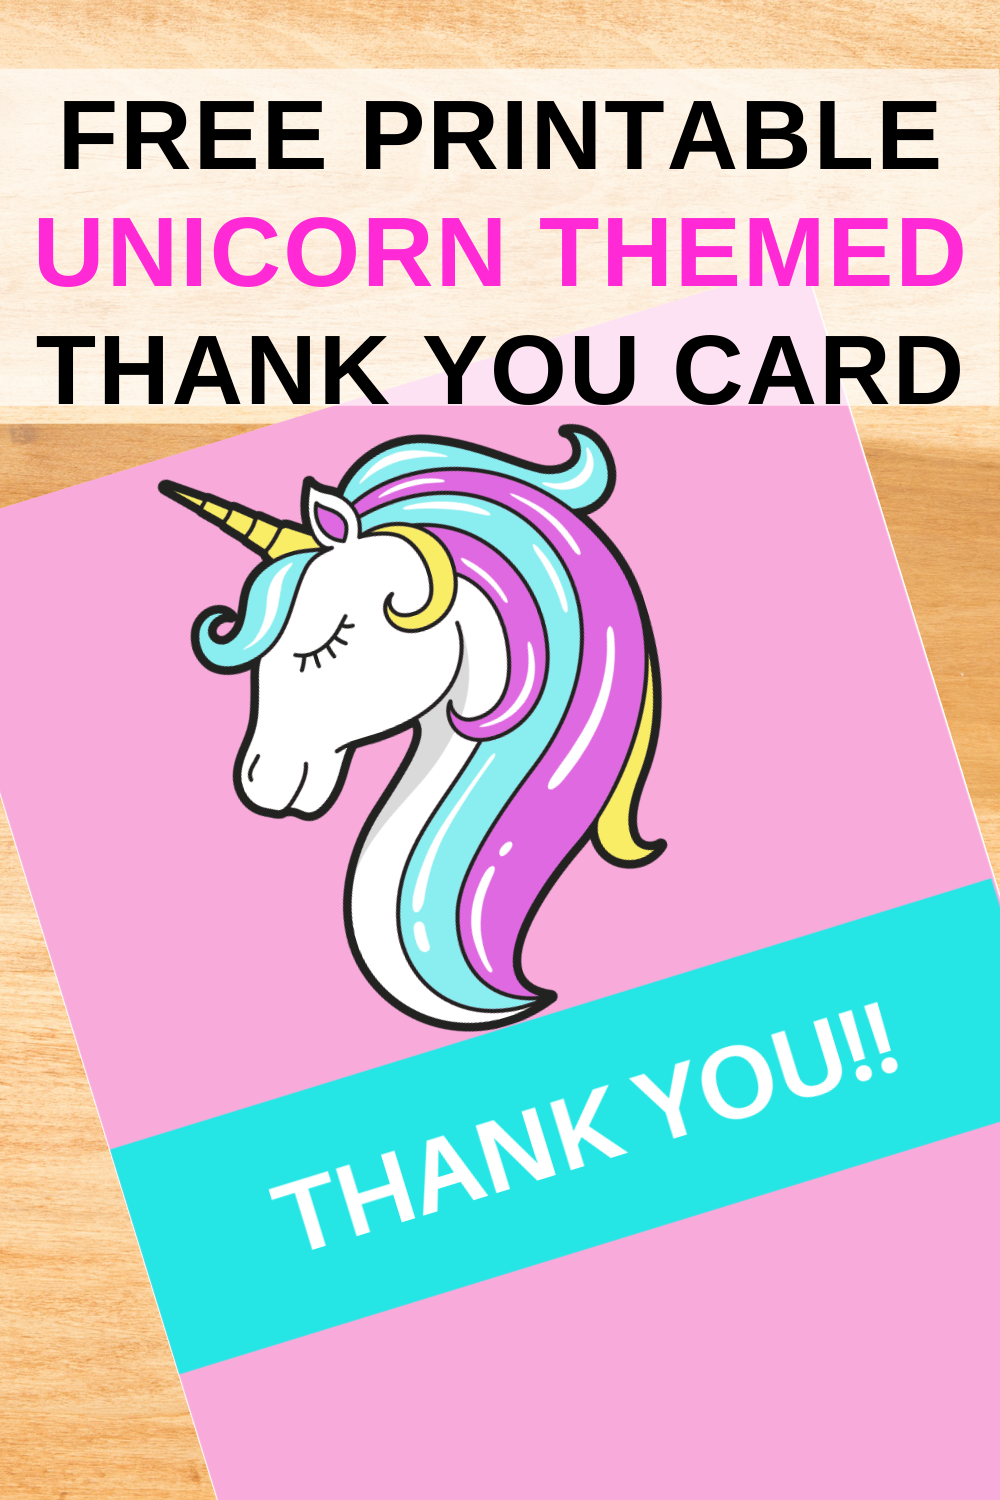 free download: unicorn thank you card for toddler birthday party